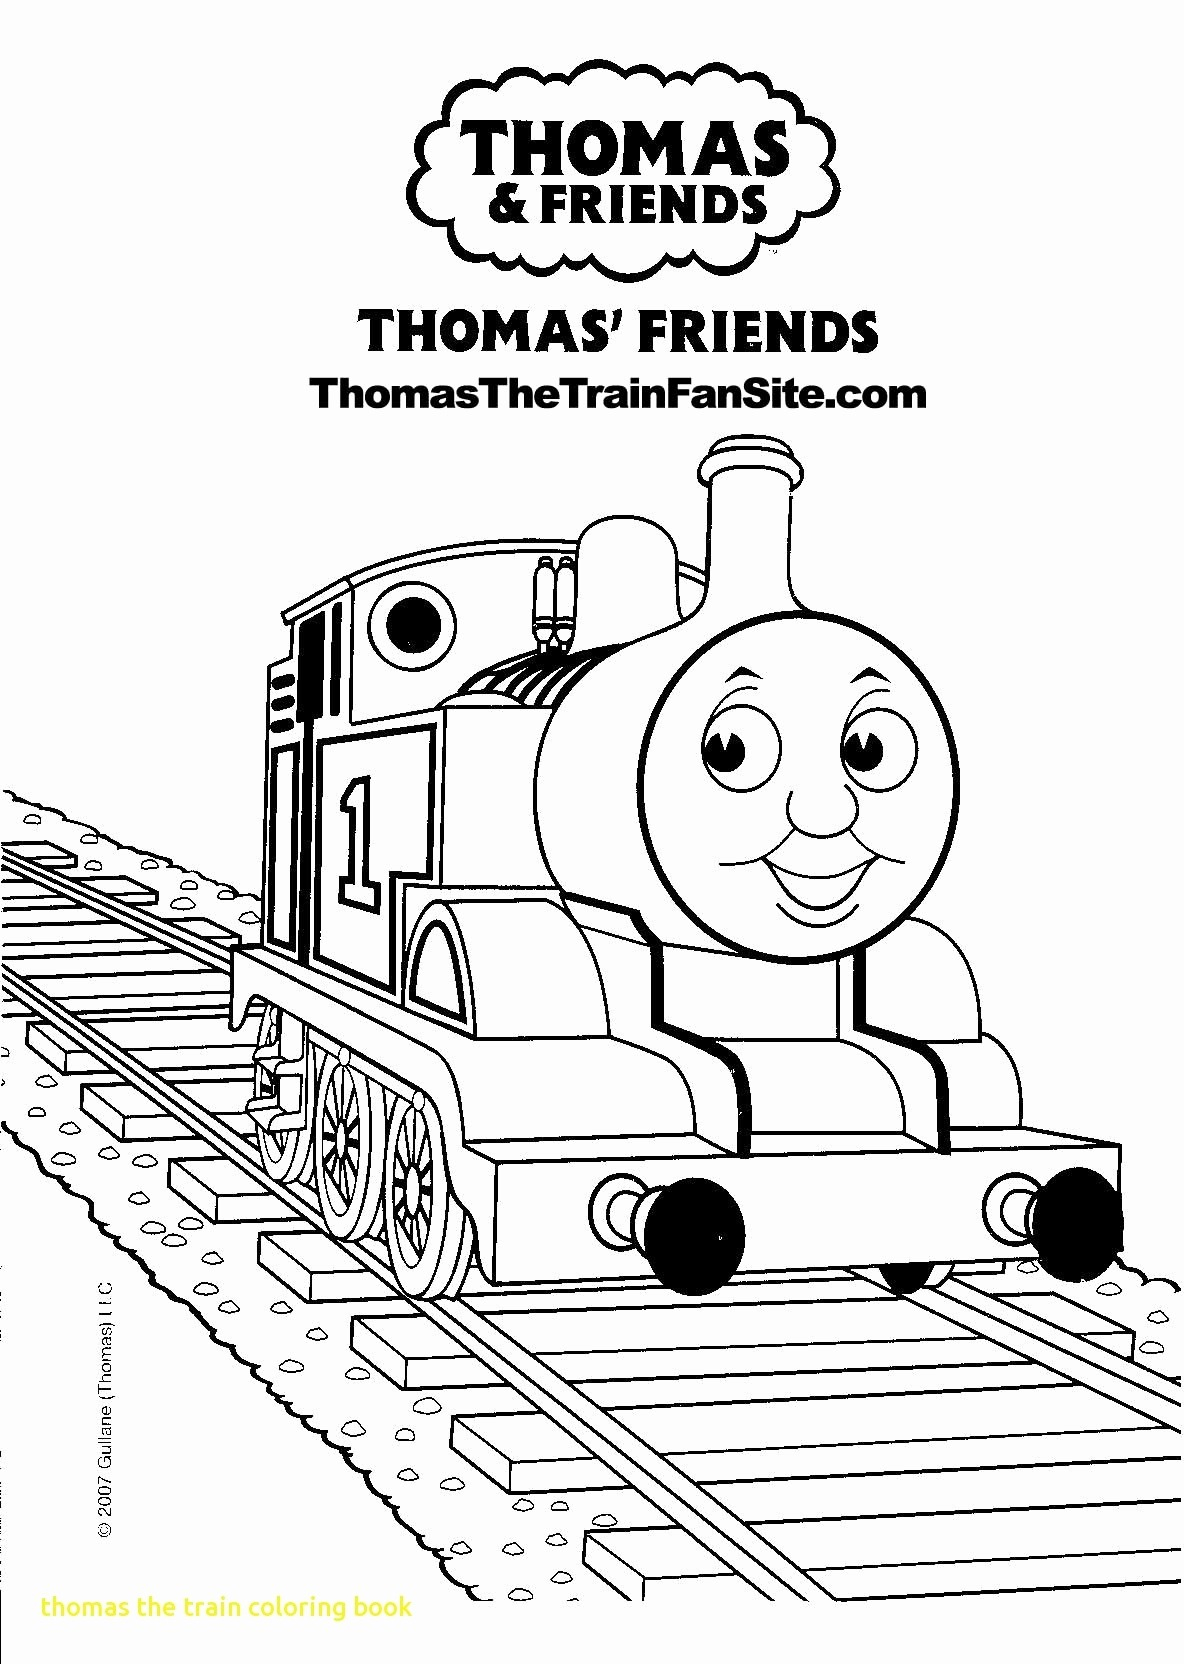 free thomas train coloring pages Collection-Thomas Train Coloring Pages Printable Coloring Pages Thomas the Train Heathermarxgallery 14-t